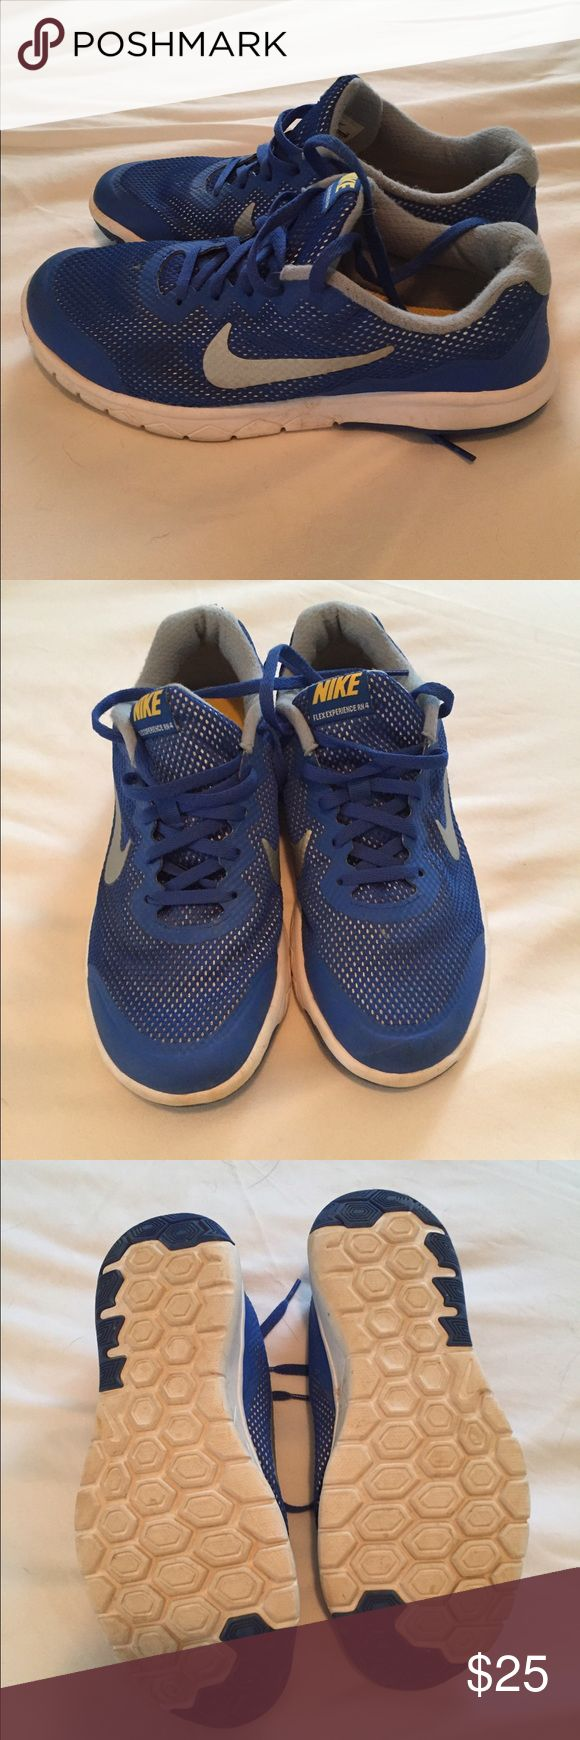 Boys Nike Flex Experience RN 4 Shoes Used Boys Nike size 6Y shoes. Gently used, in excellent condition. Make offer, bundle and save!! 😁 Nike Shoes Sneakers